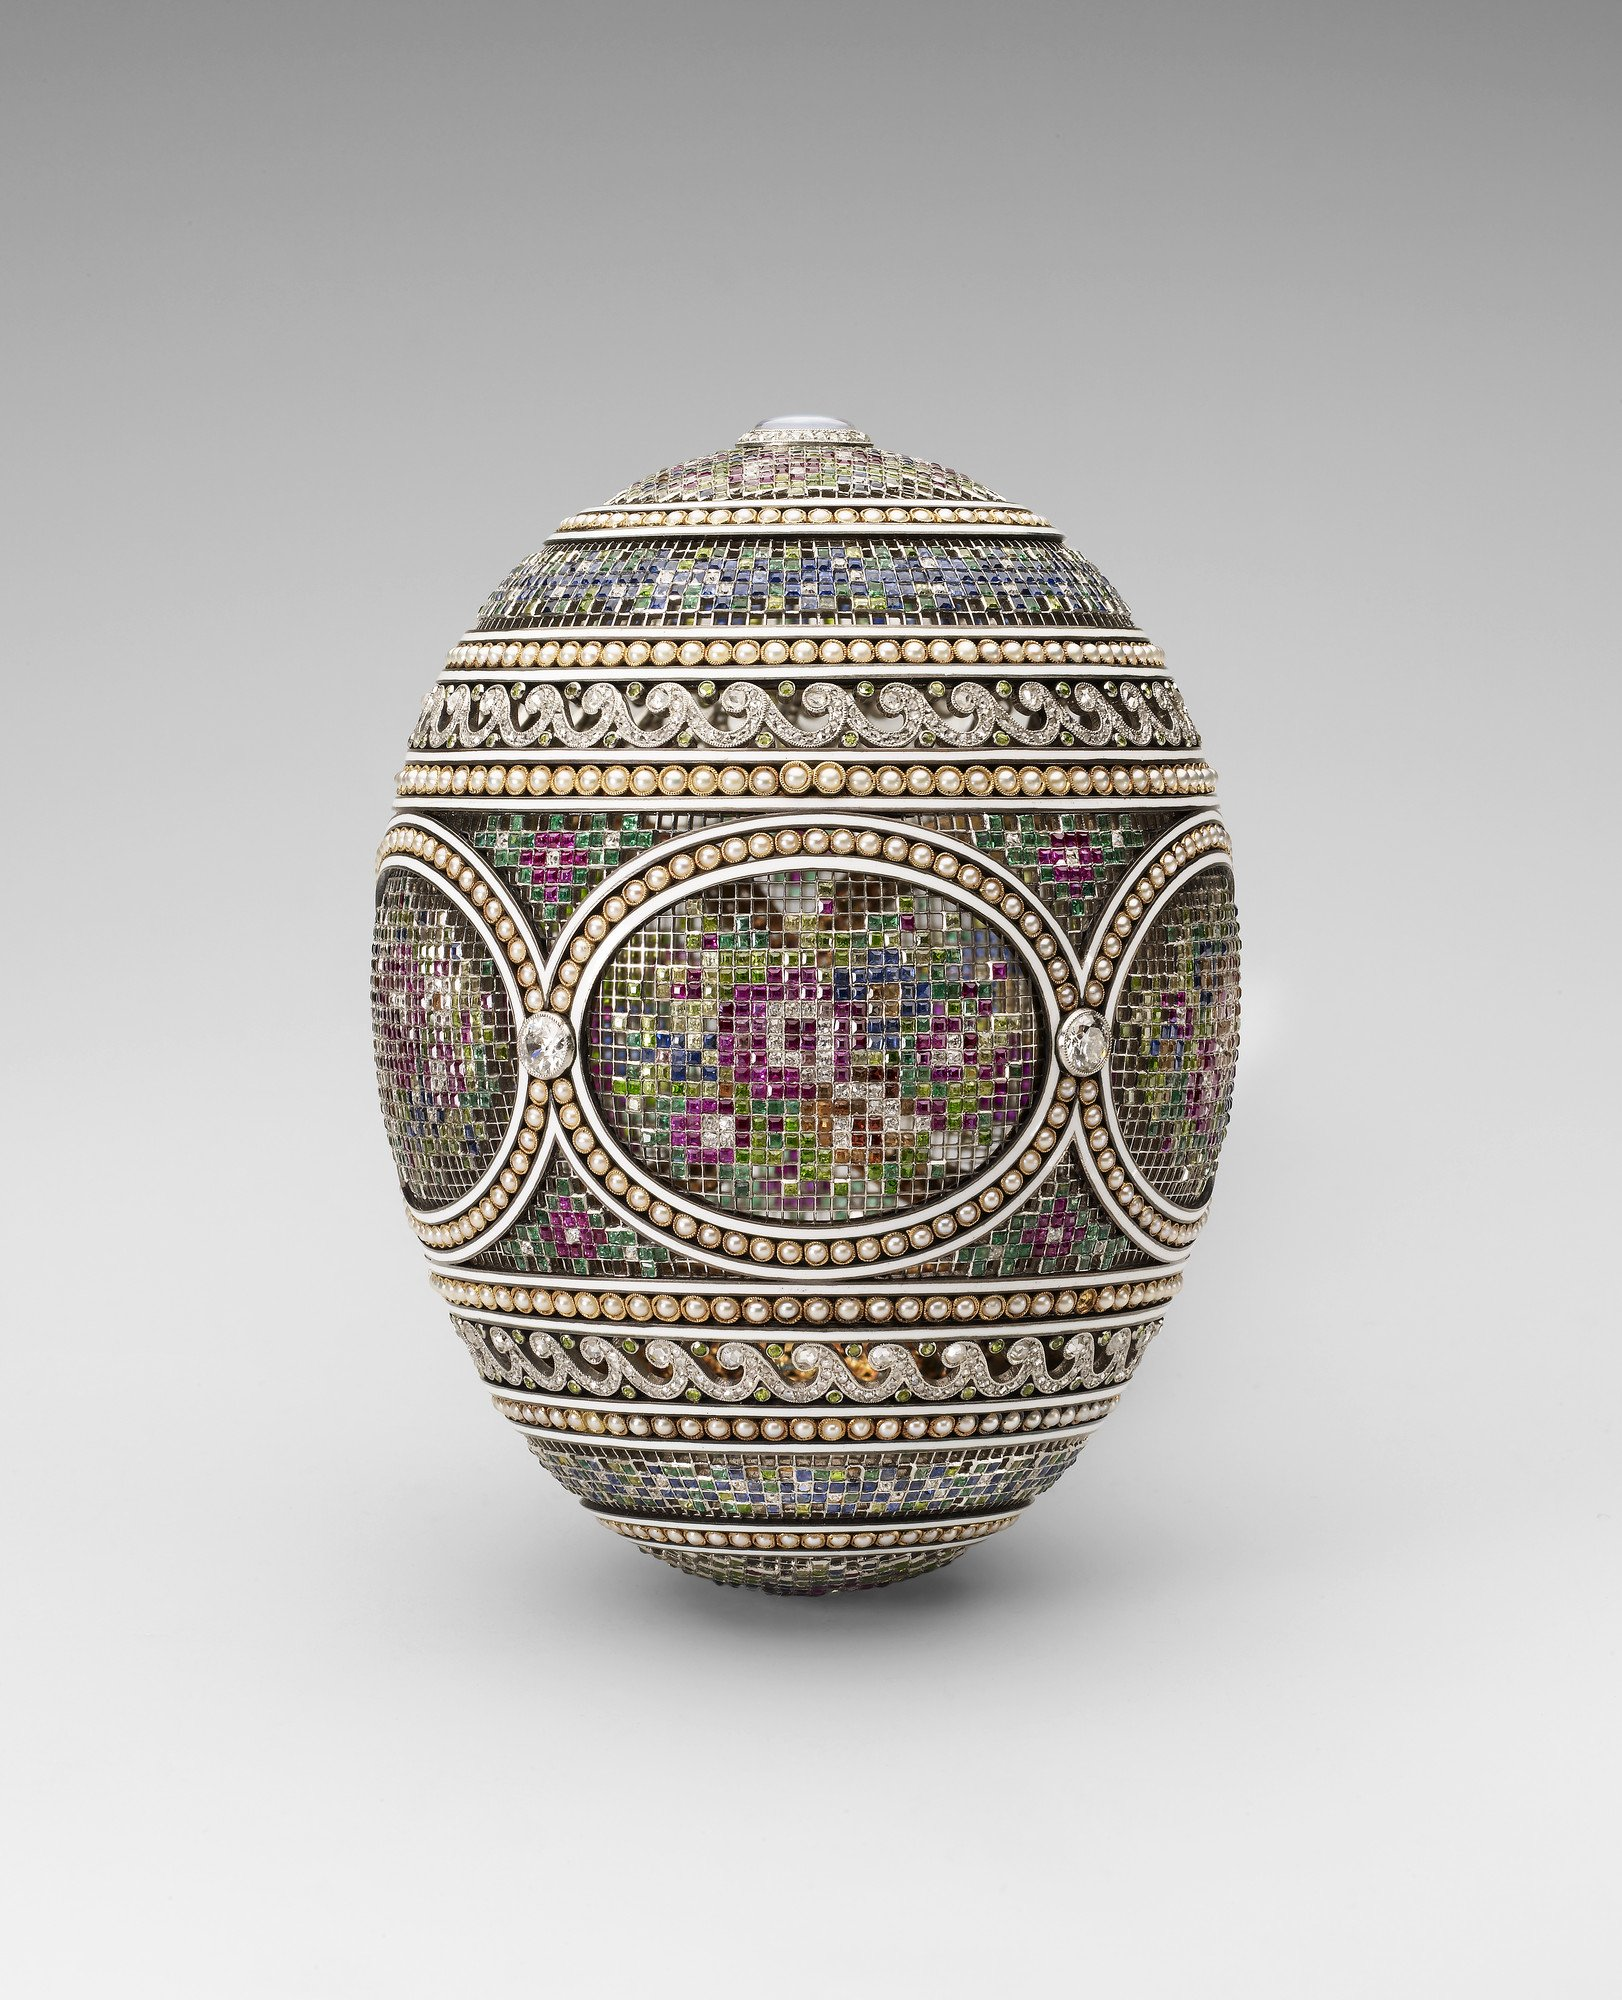 Faberge Mosaic Egg with Surprise Royal Collection Trust